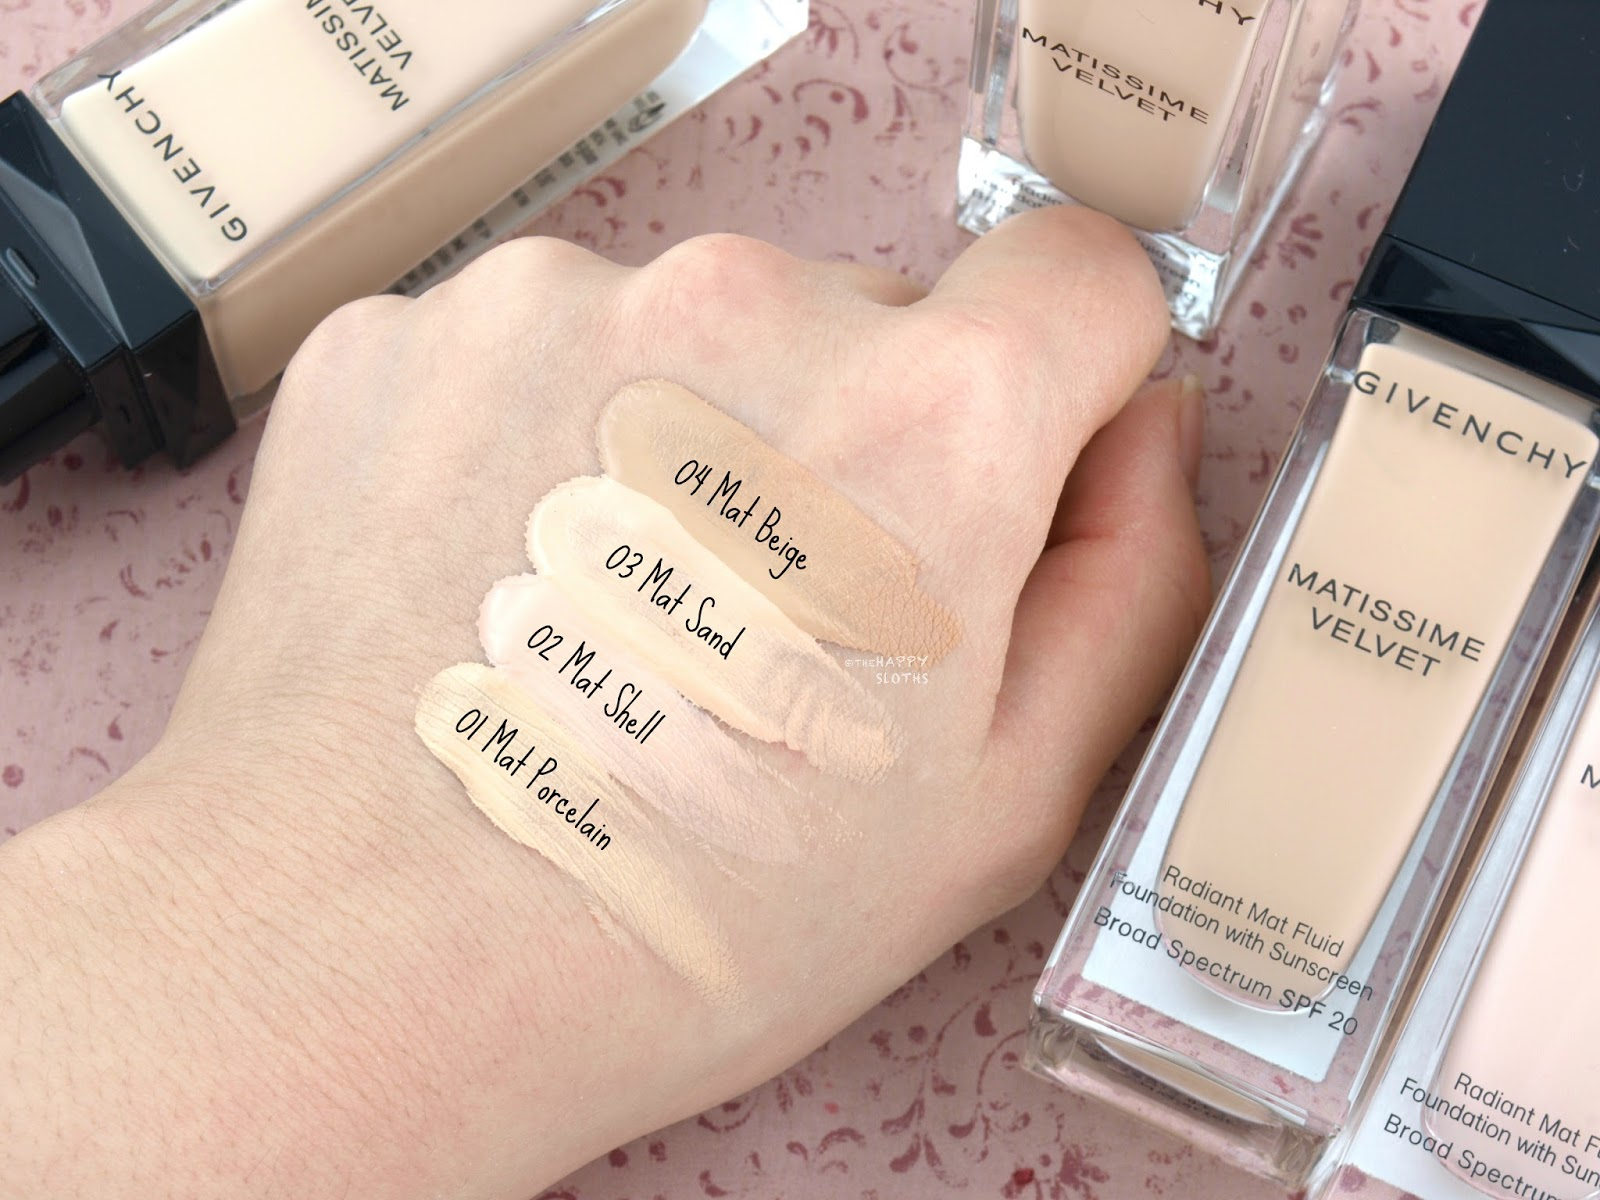 Givenchy Matissime Velvet Radiant Mat Fluid Foundation: Review and Swatches